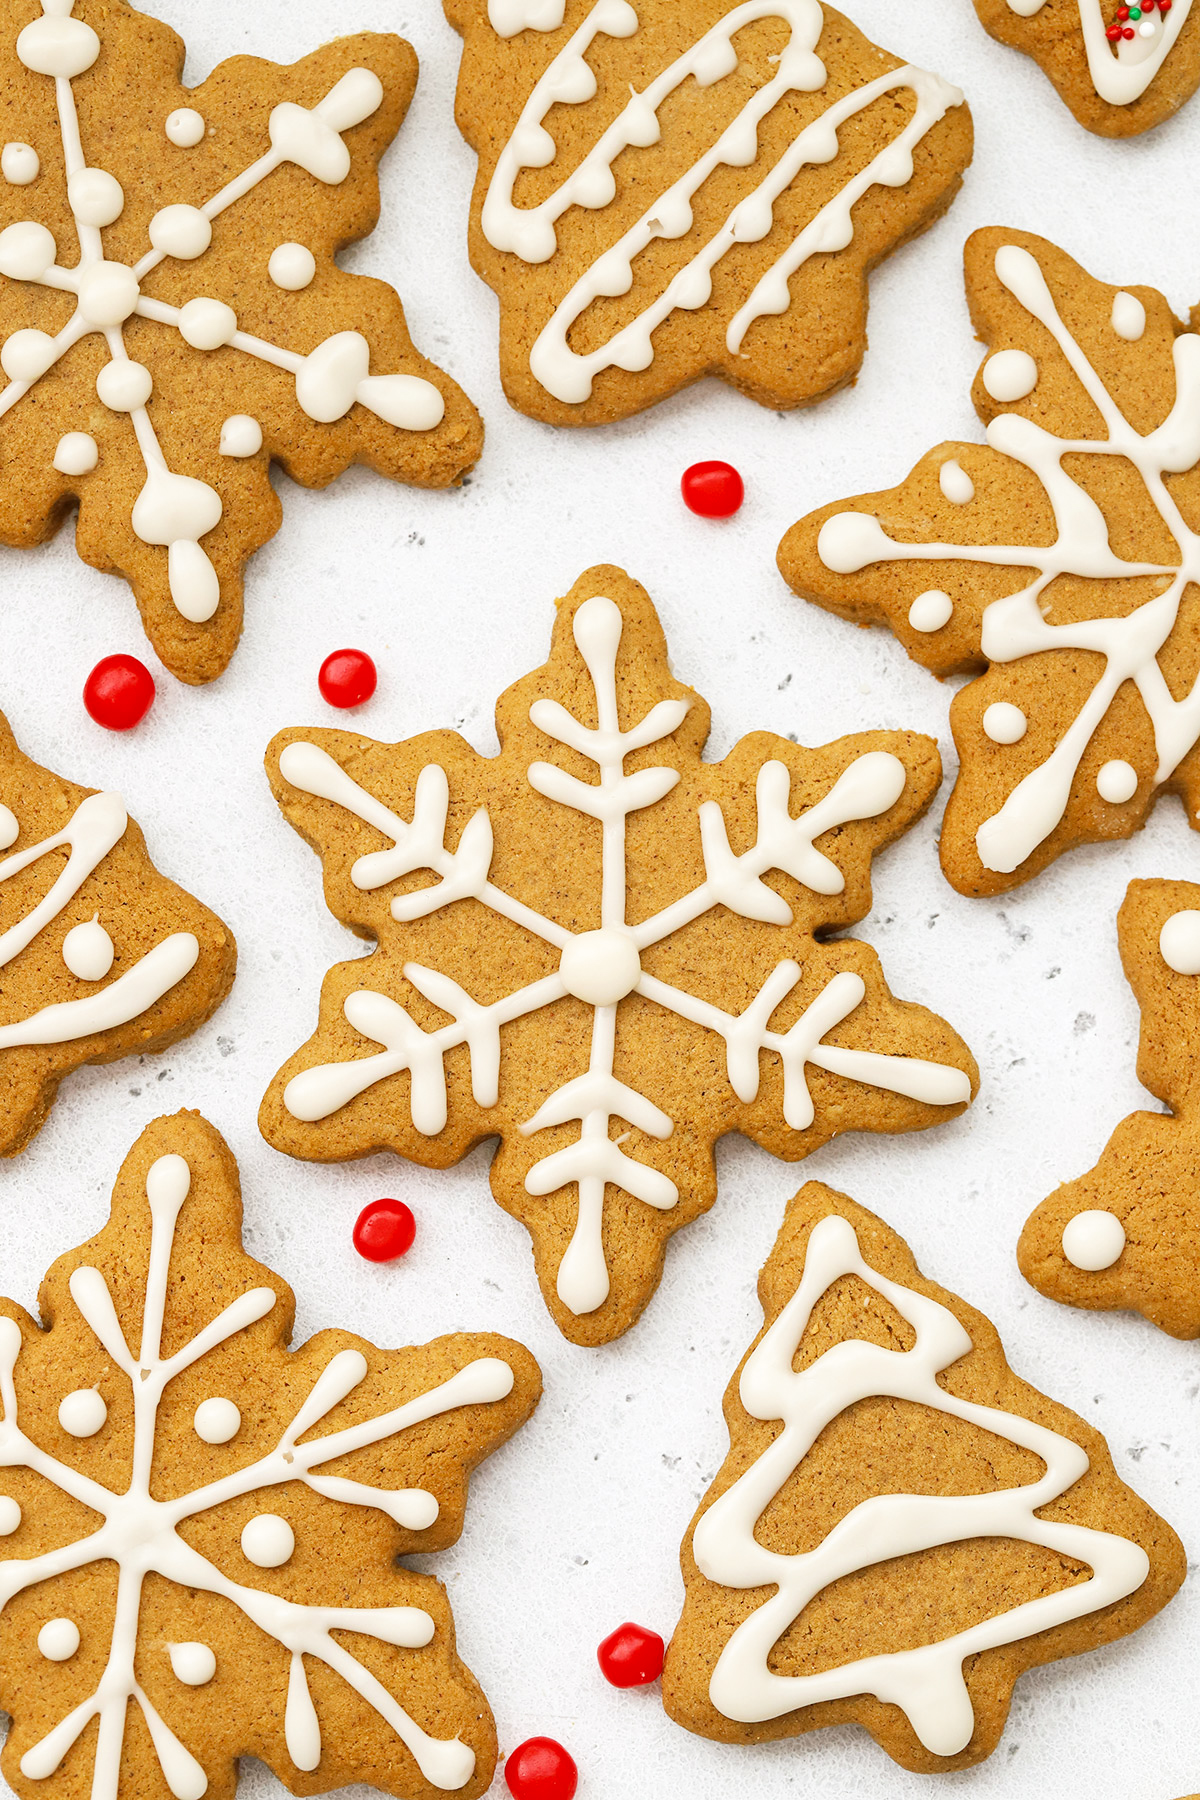 Close up Overhead view of decorated gluten-free gingerbread cookies with white icing on a white background